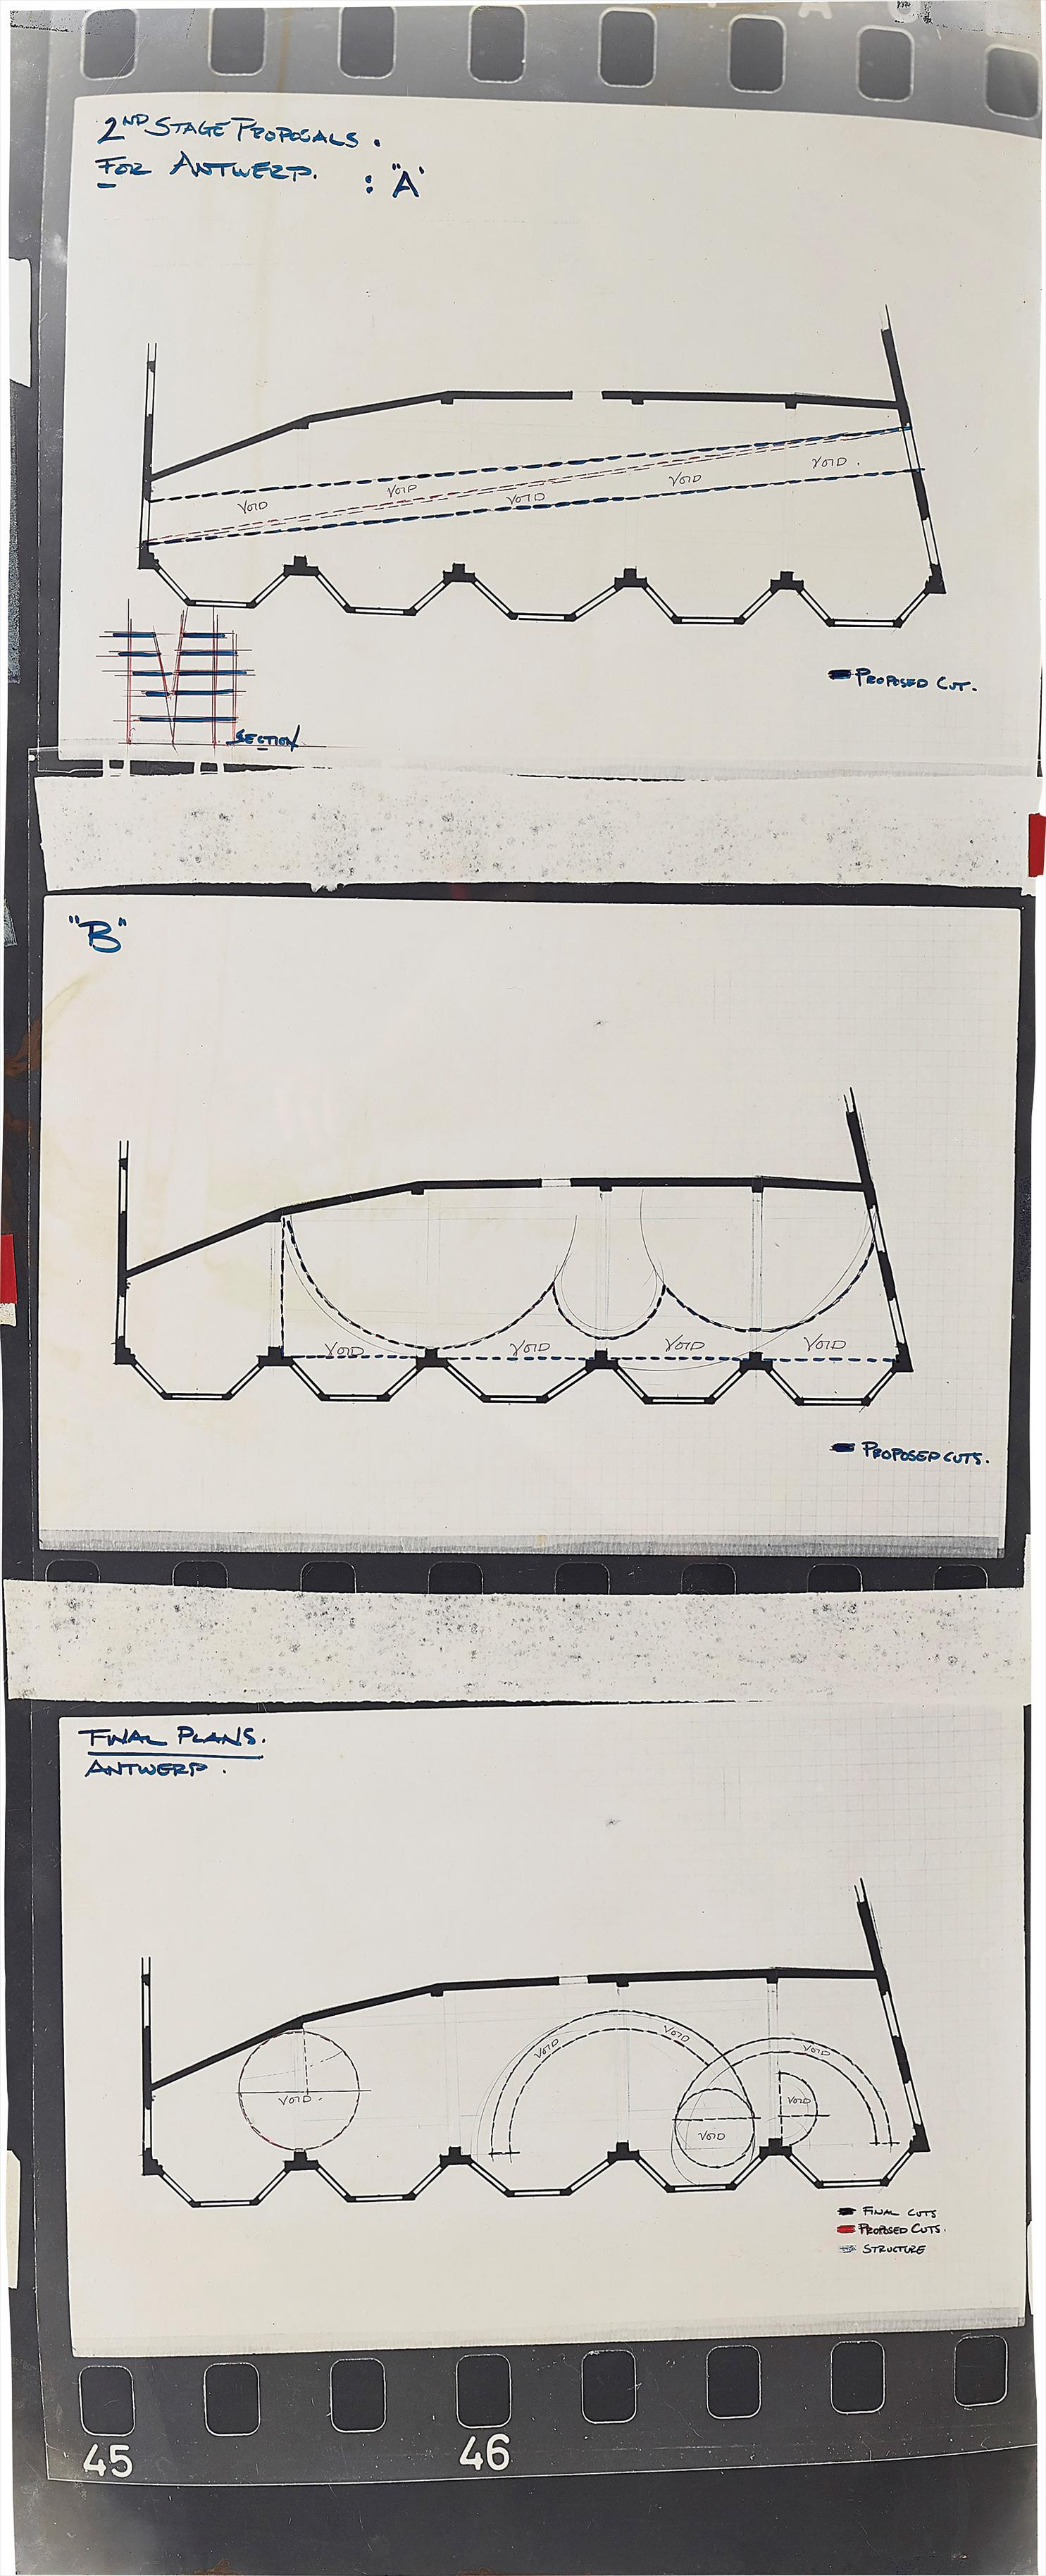 Gordon Matta-Clark-2Nd Stage Proposals For Antwerp (With Final Plans)-1977